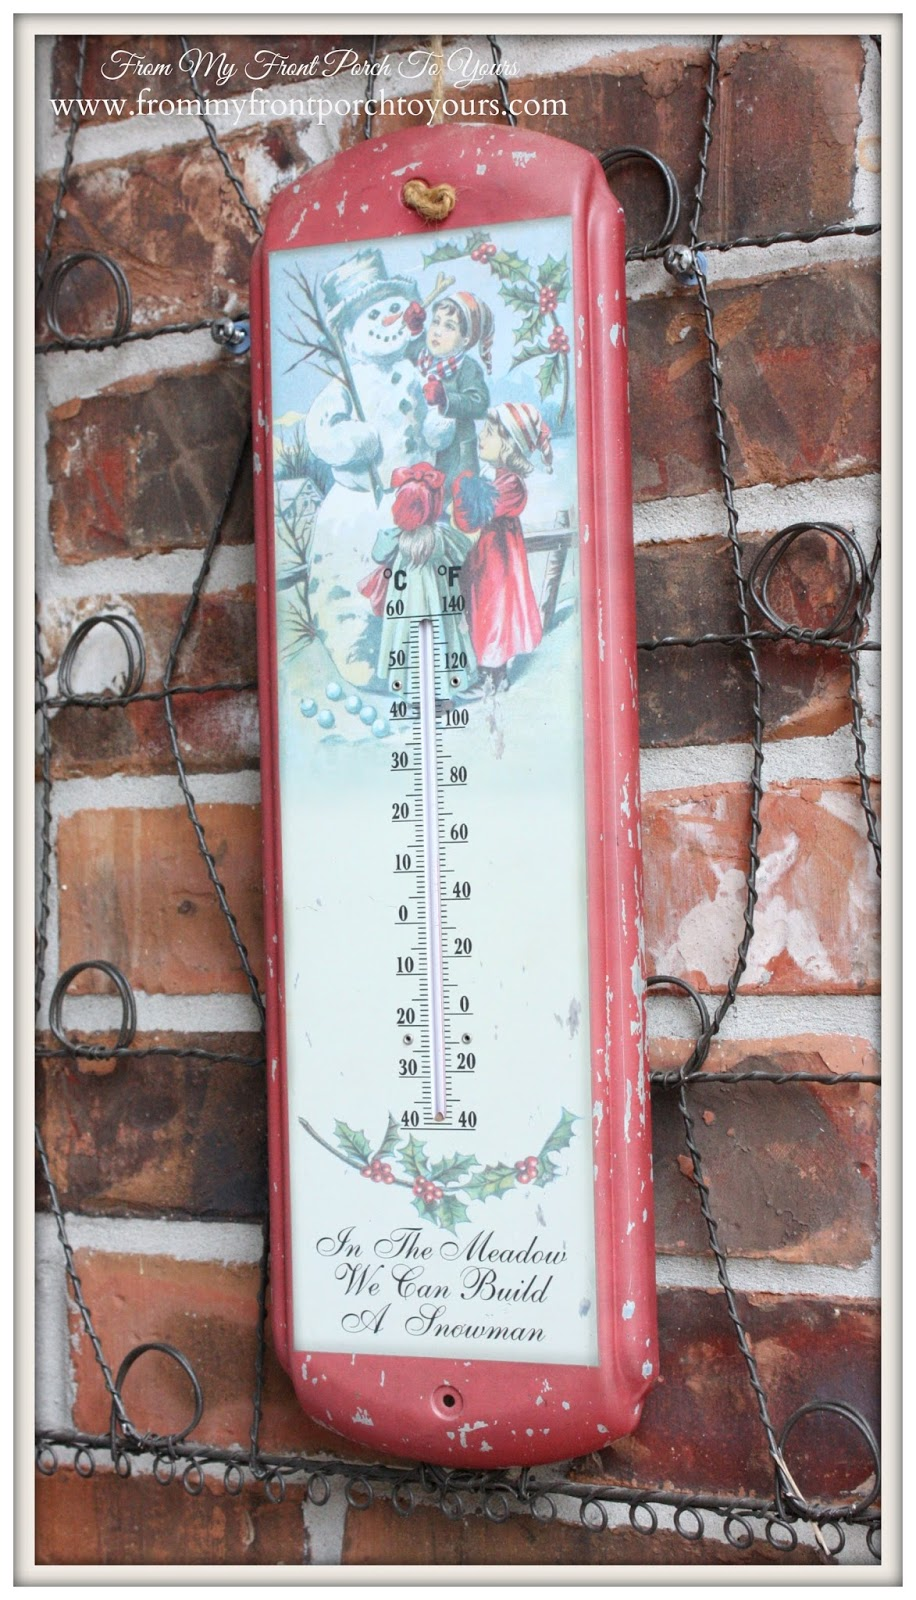 Vintage Thermometer-Simple Vintage Christmas Front Porch- From My Front Porch To Yours